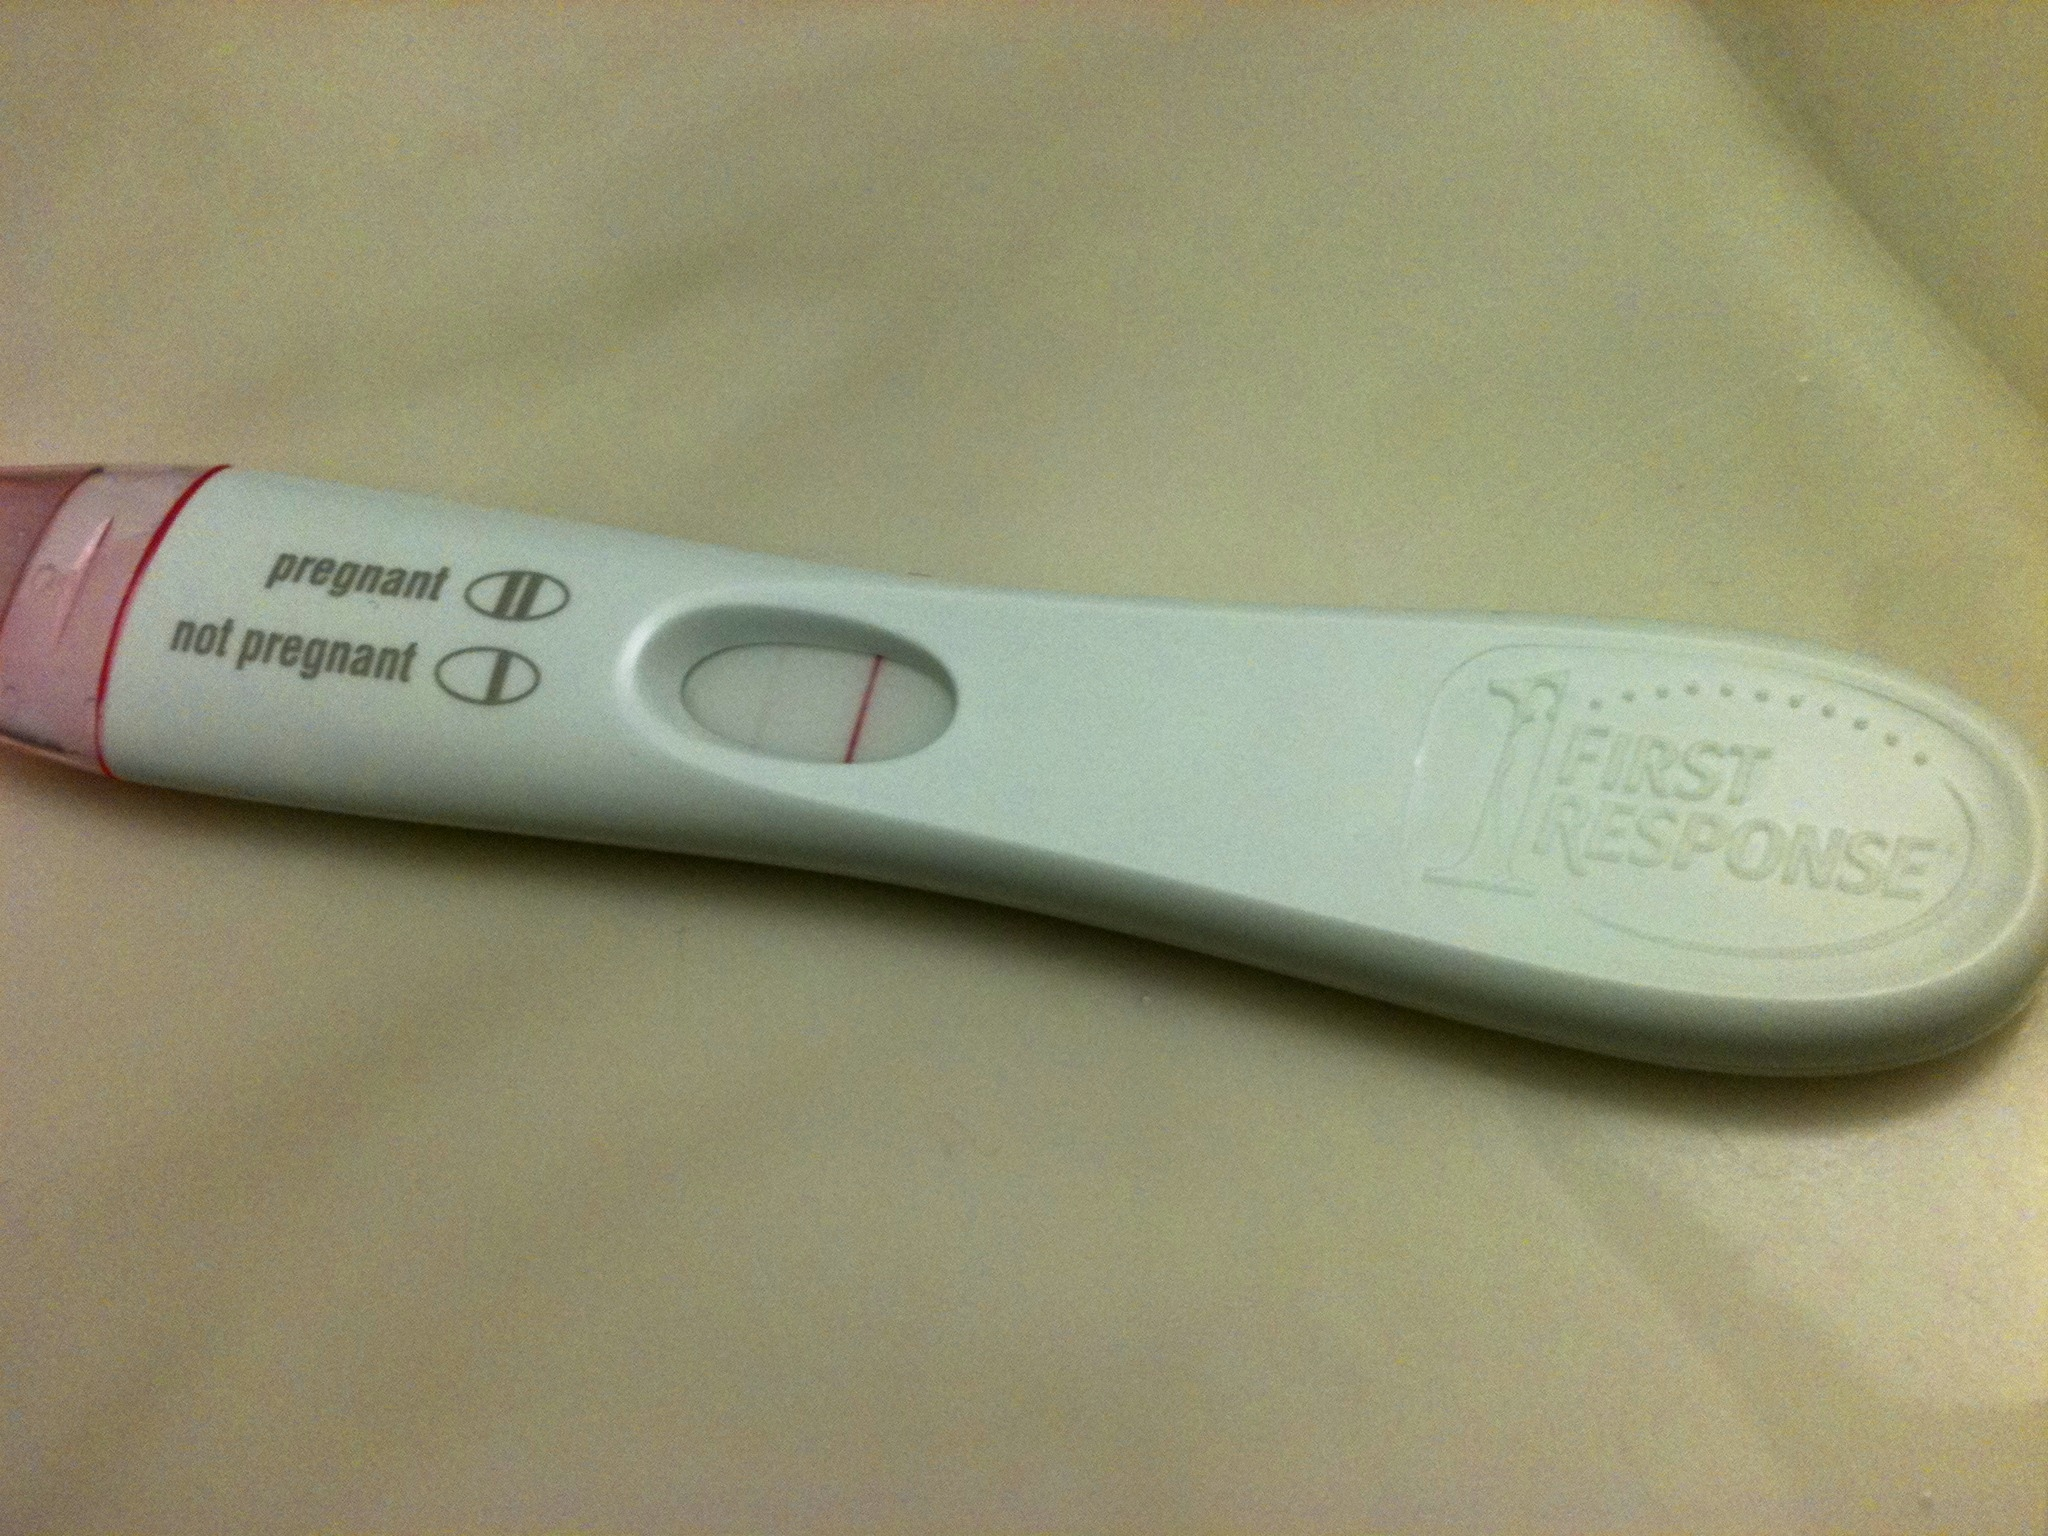 Coupon first response pregnancy test